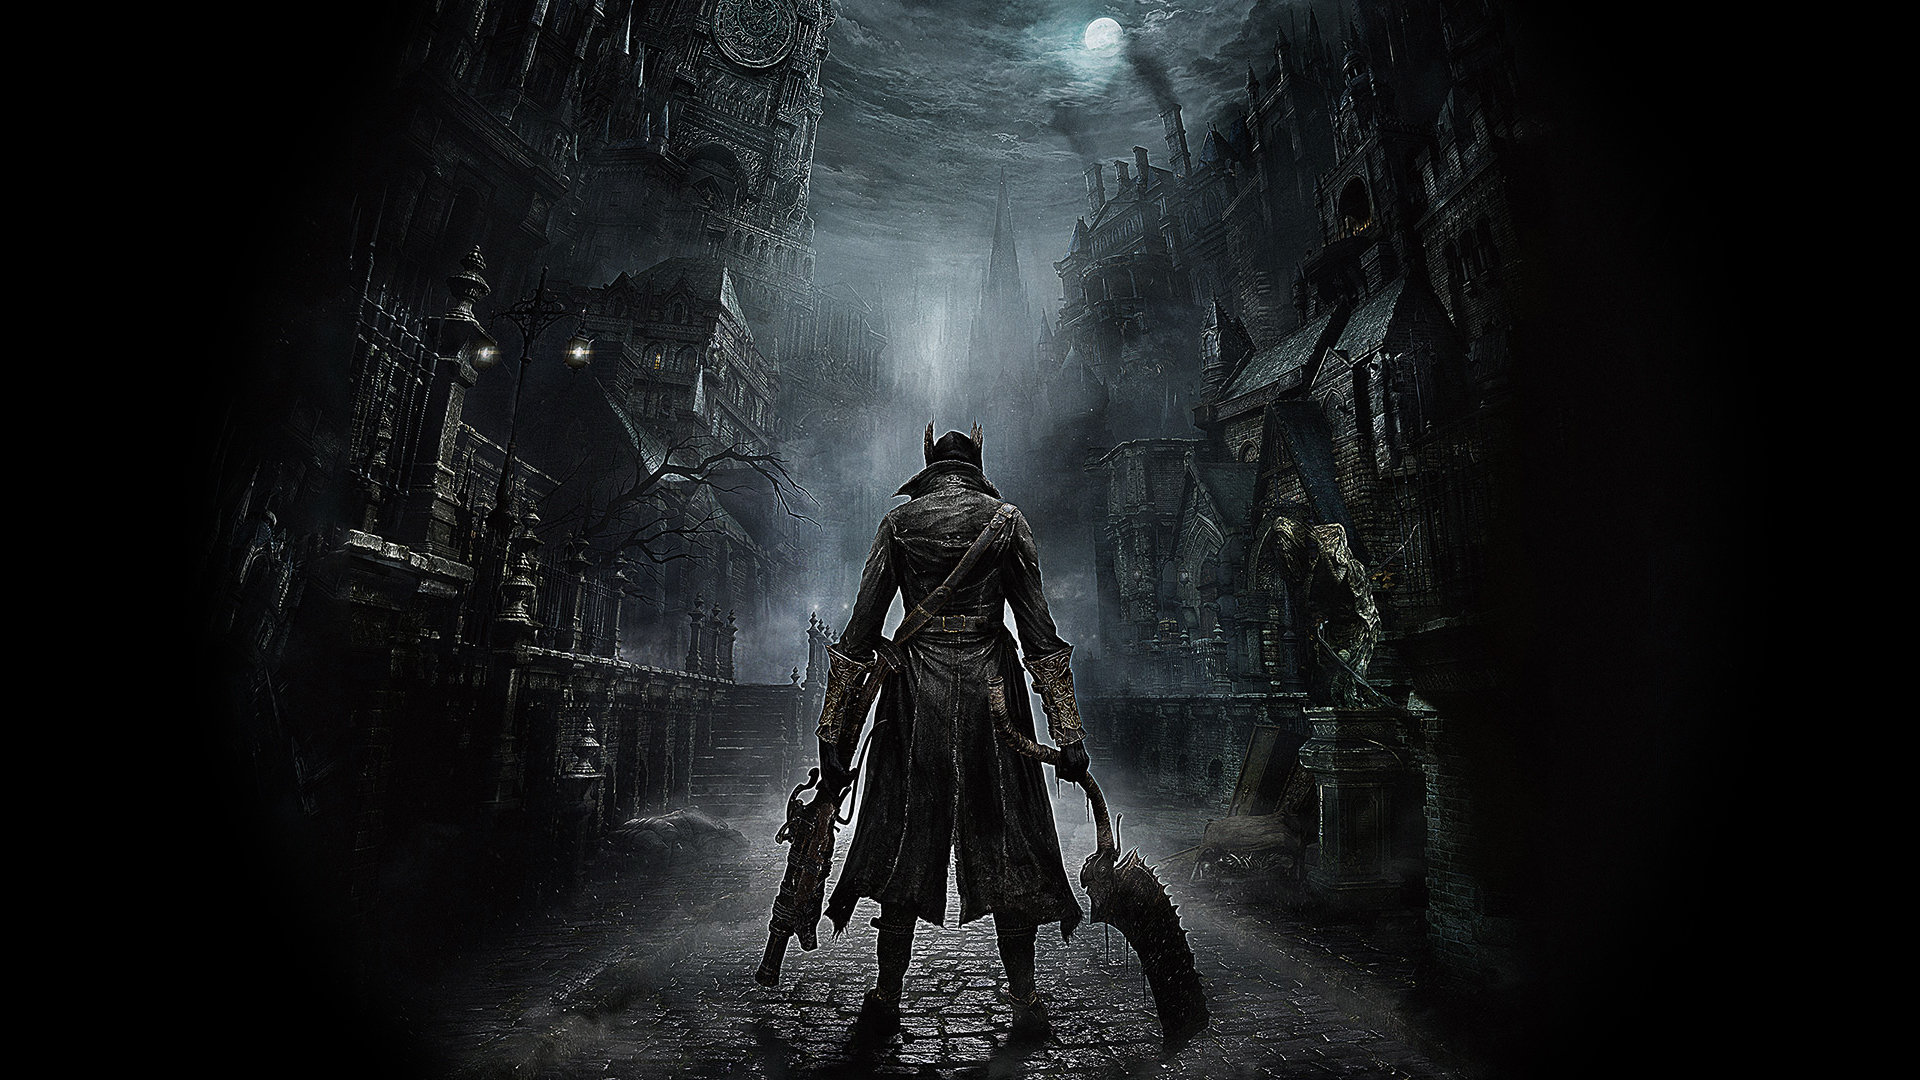 Bloodborne Wallpapers 1920x1080 Full Hd 1080p Desktop